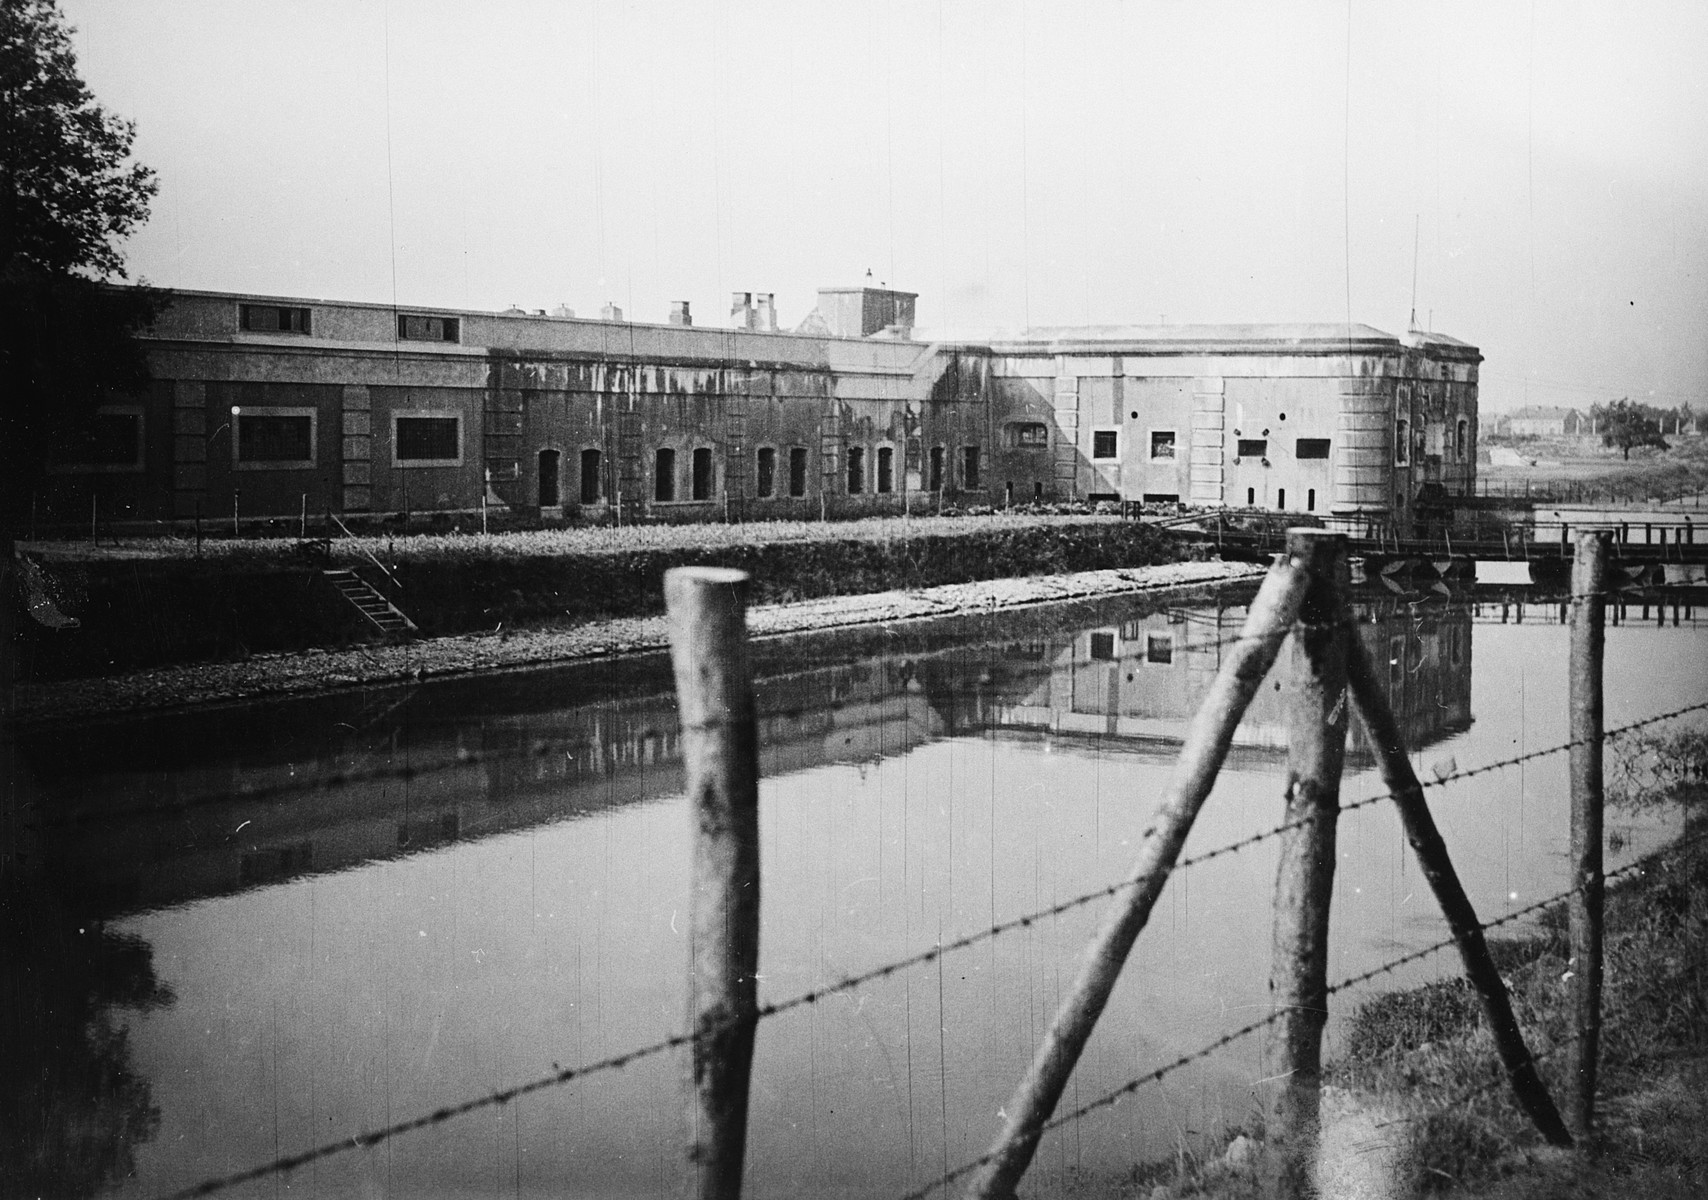 View of the moat and barbed wire fence surrounding the Breendonck concentration camp.